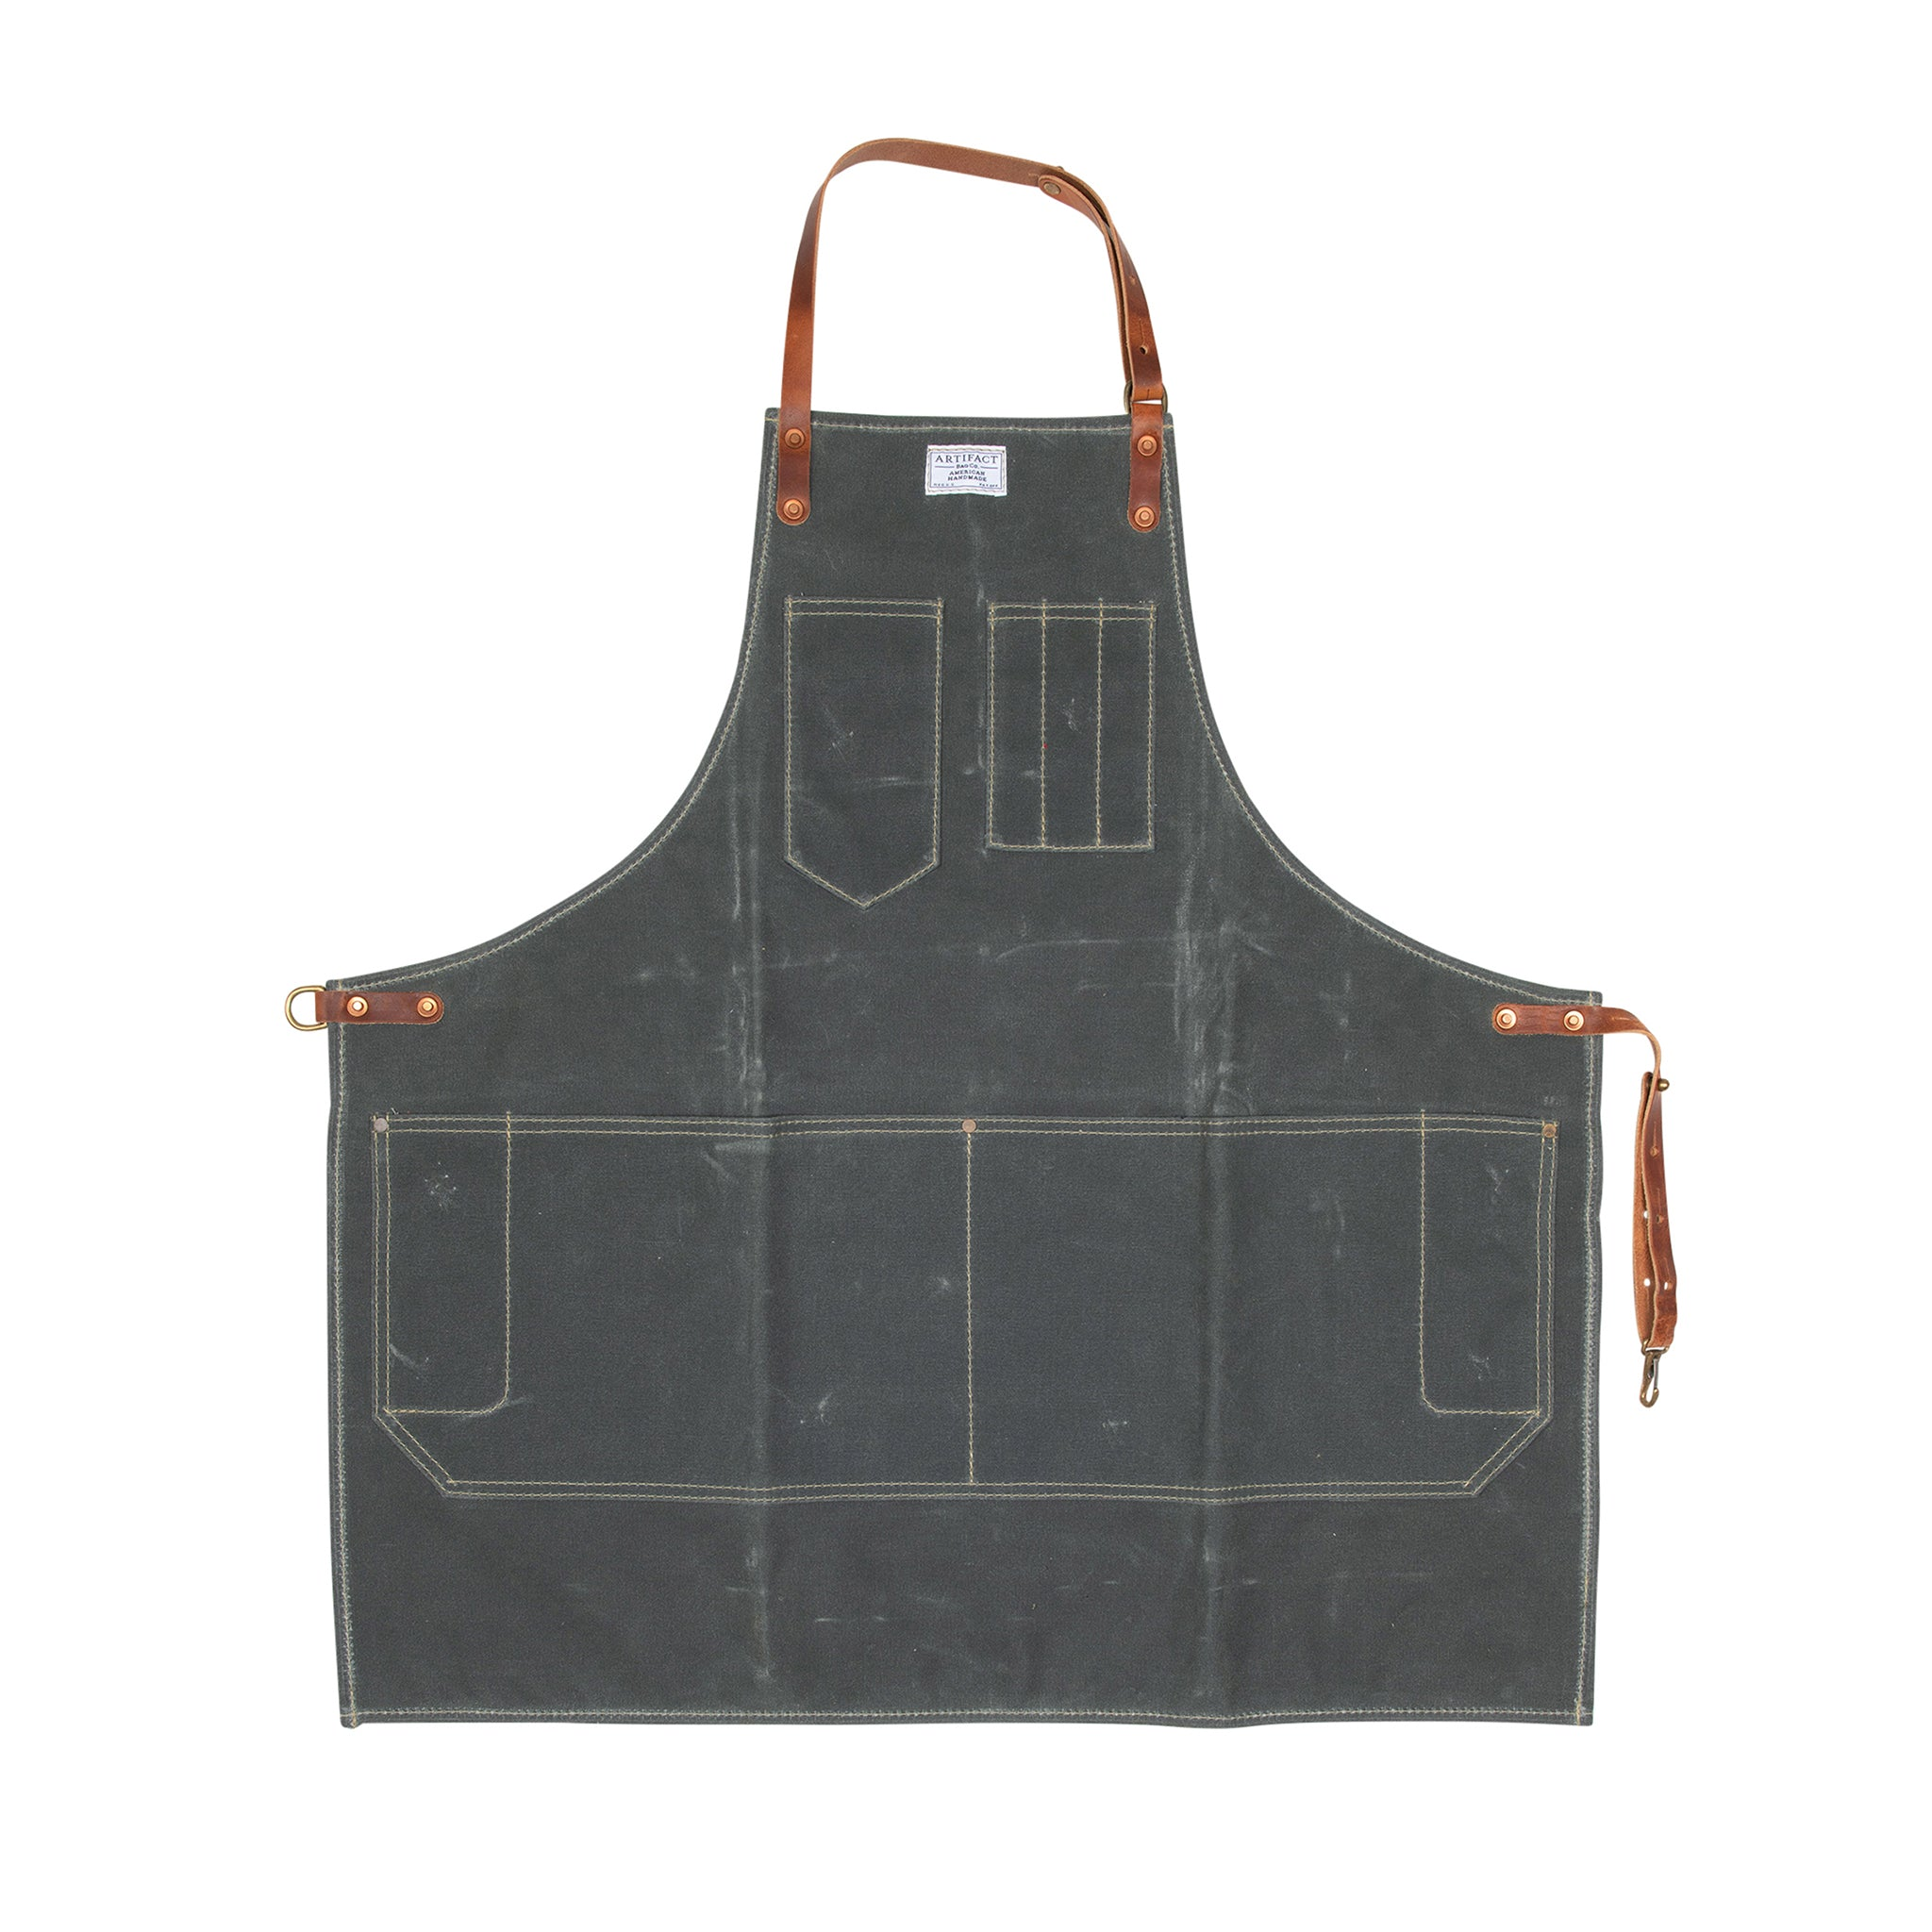 Artifact Olive Wax Canvas Apron w/ Fixed Leather Strap